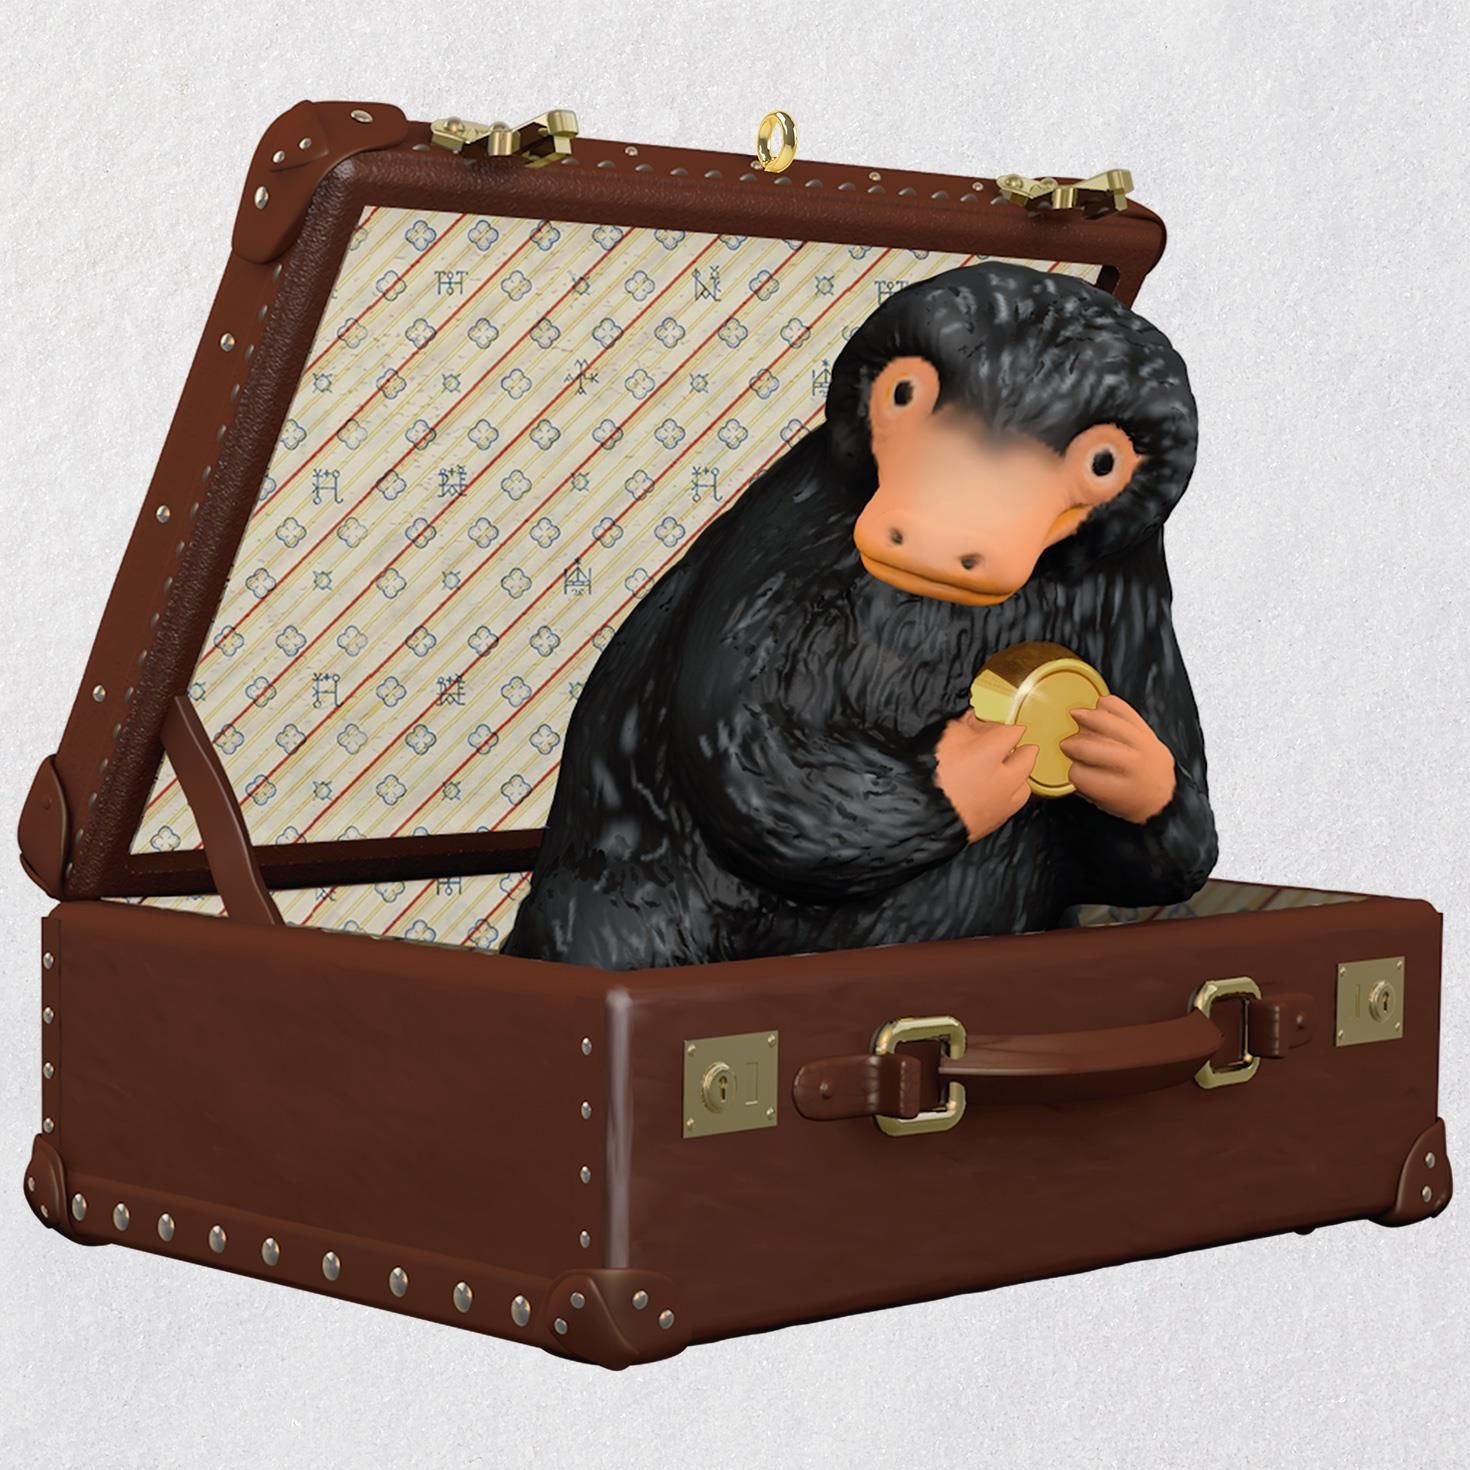 Hallmark Fantastic Beasts and Where to Find Them Newt Scamander's Niffler Ornament keepsake-ornaments Movies & TV